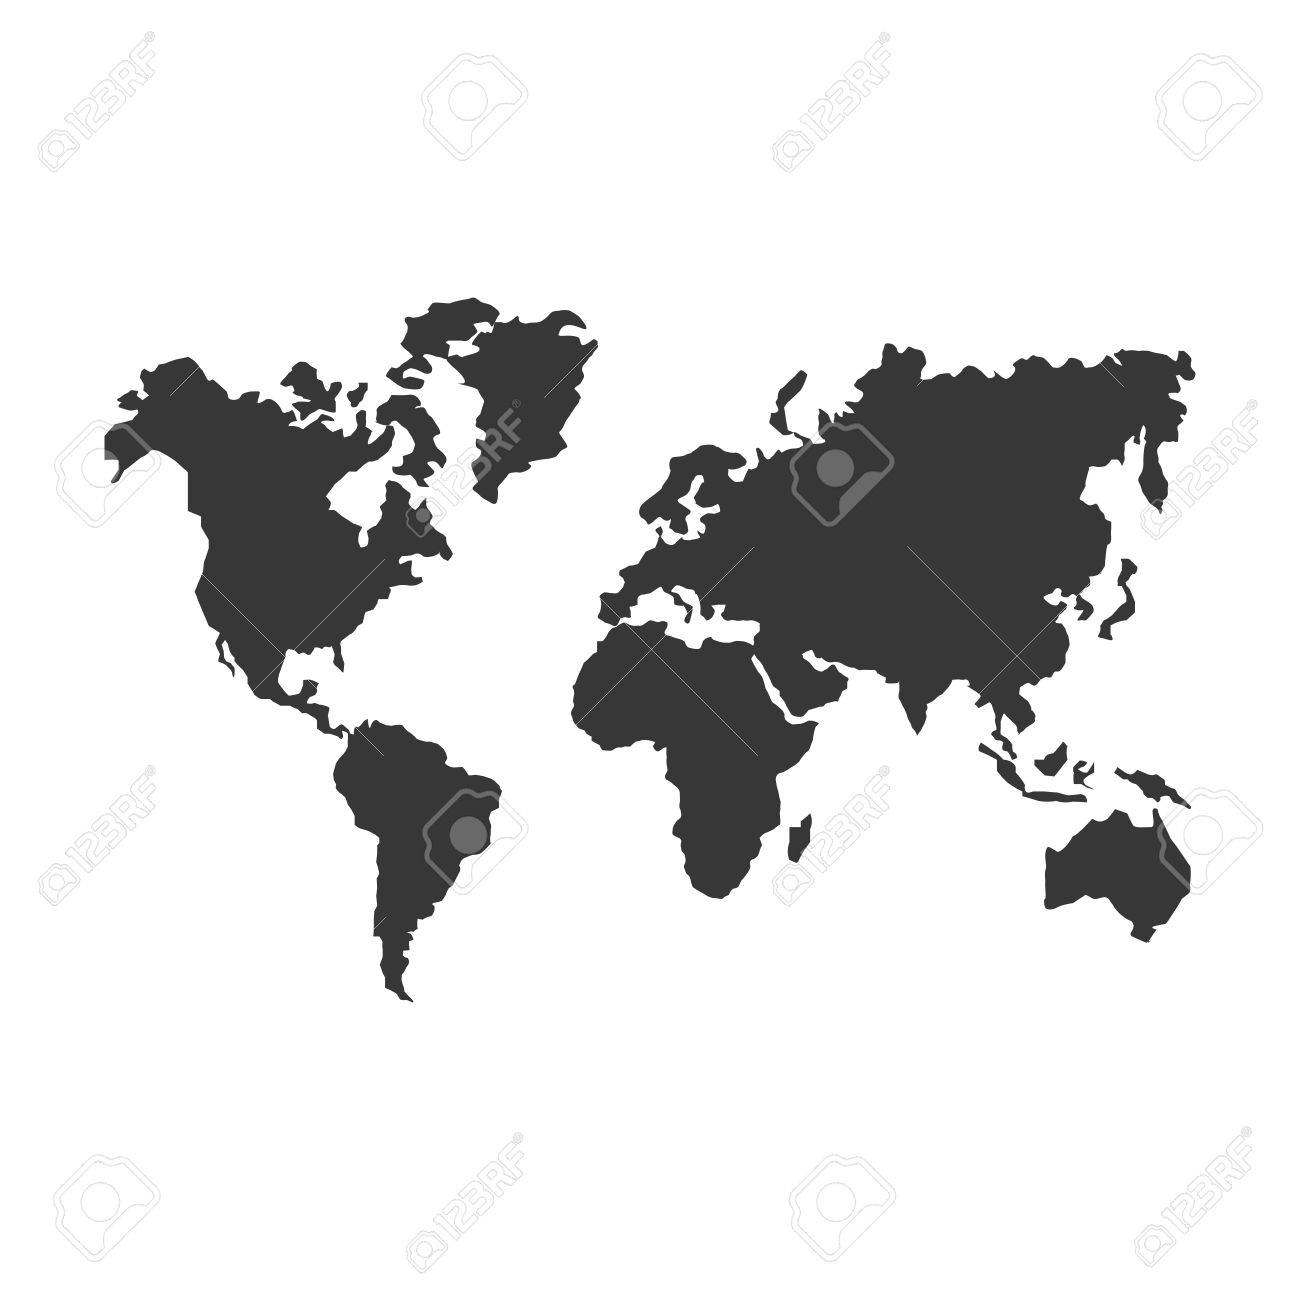 Planet earth world map cartography icon flat and isolated design planet earth world map cartography icon flat and isolated design vector illustration stock vector gumiabroncs Images